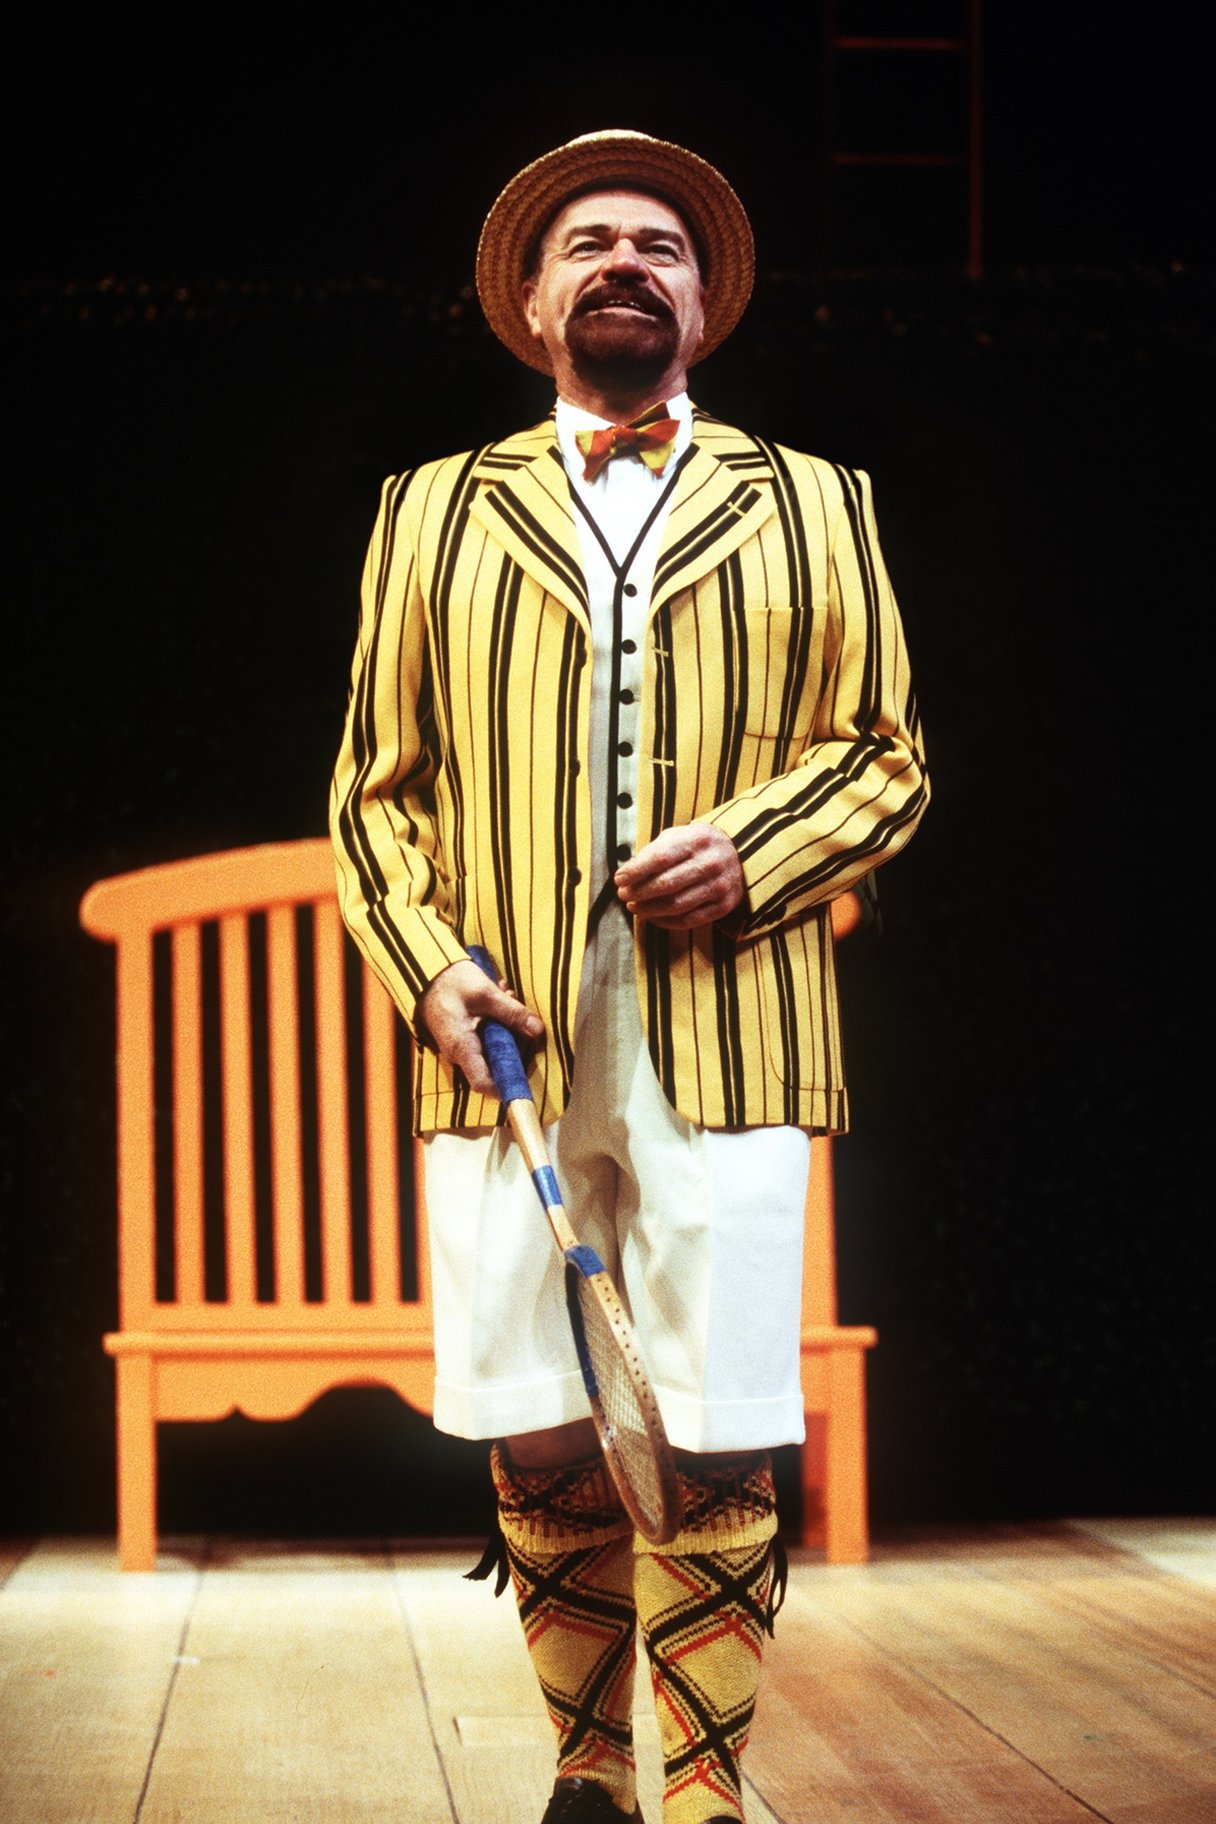 Malvolio stands wearing a bright yellow striped blazer and patterned stockings, holding a wooden tennis racket and grinning in the 1998 production of Twelfth Night.